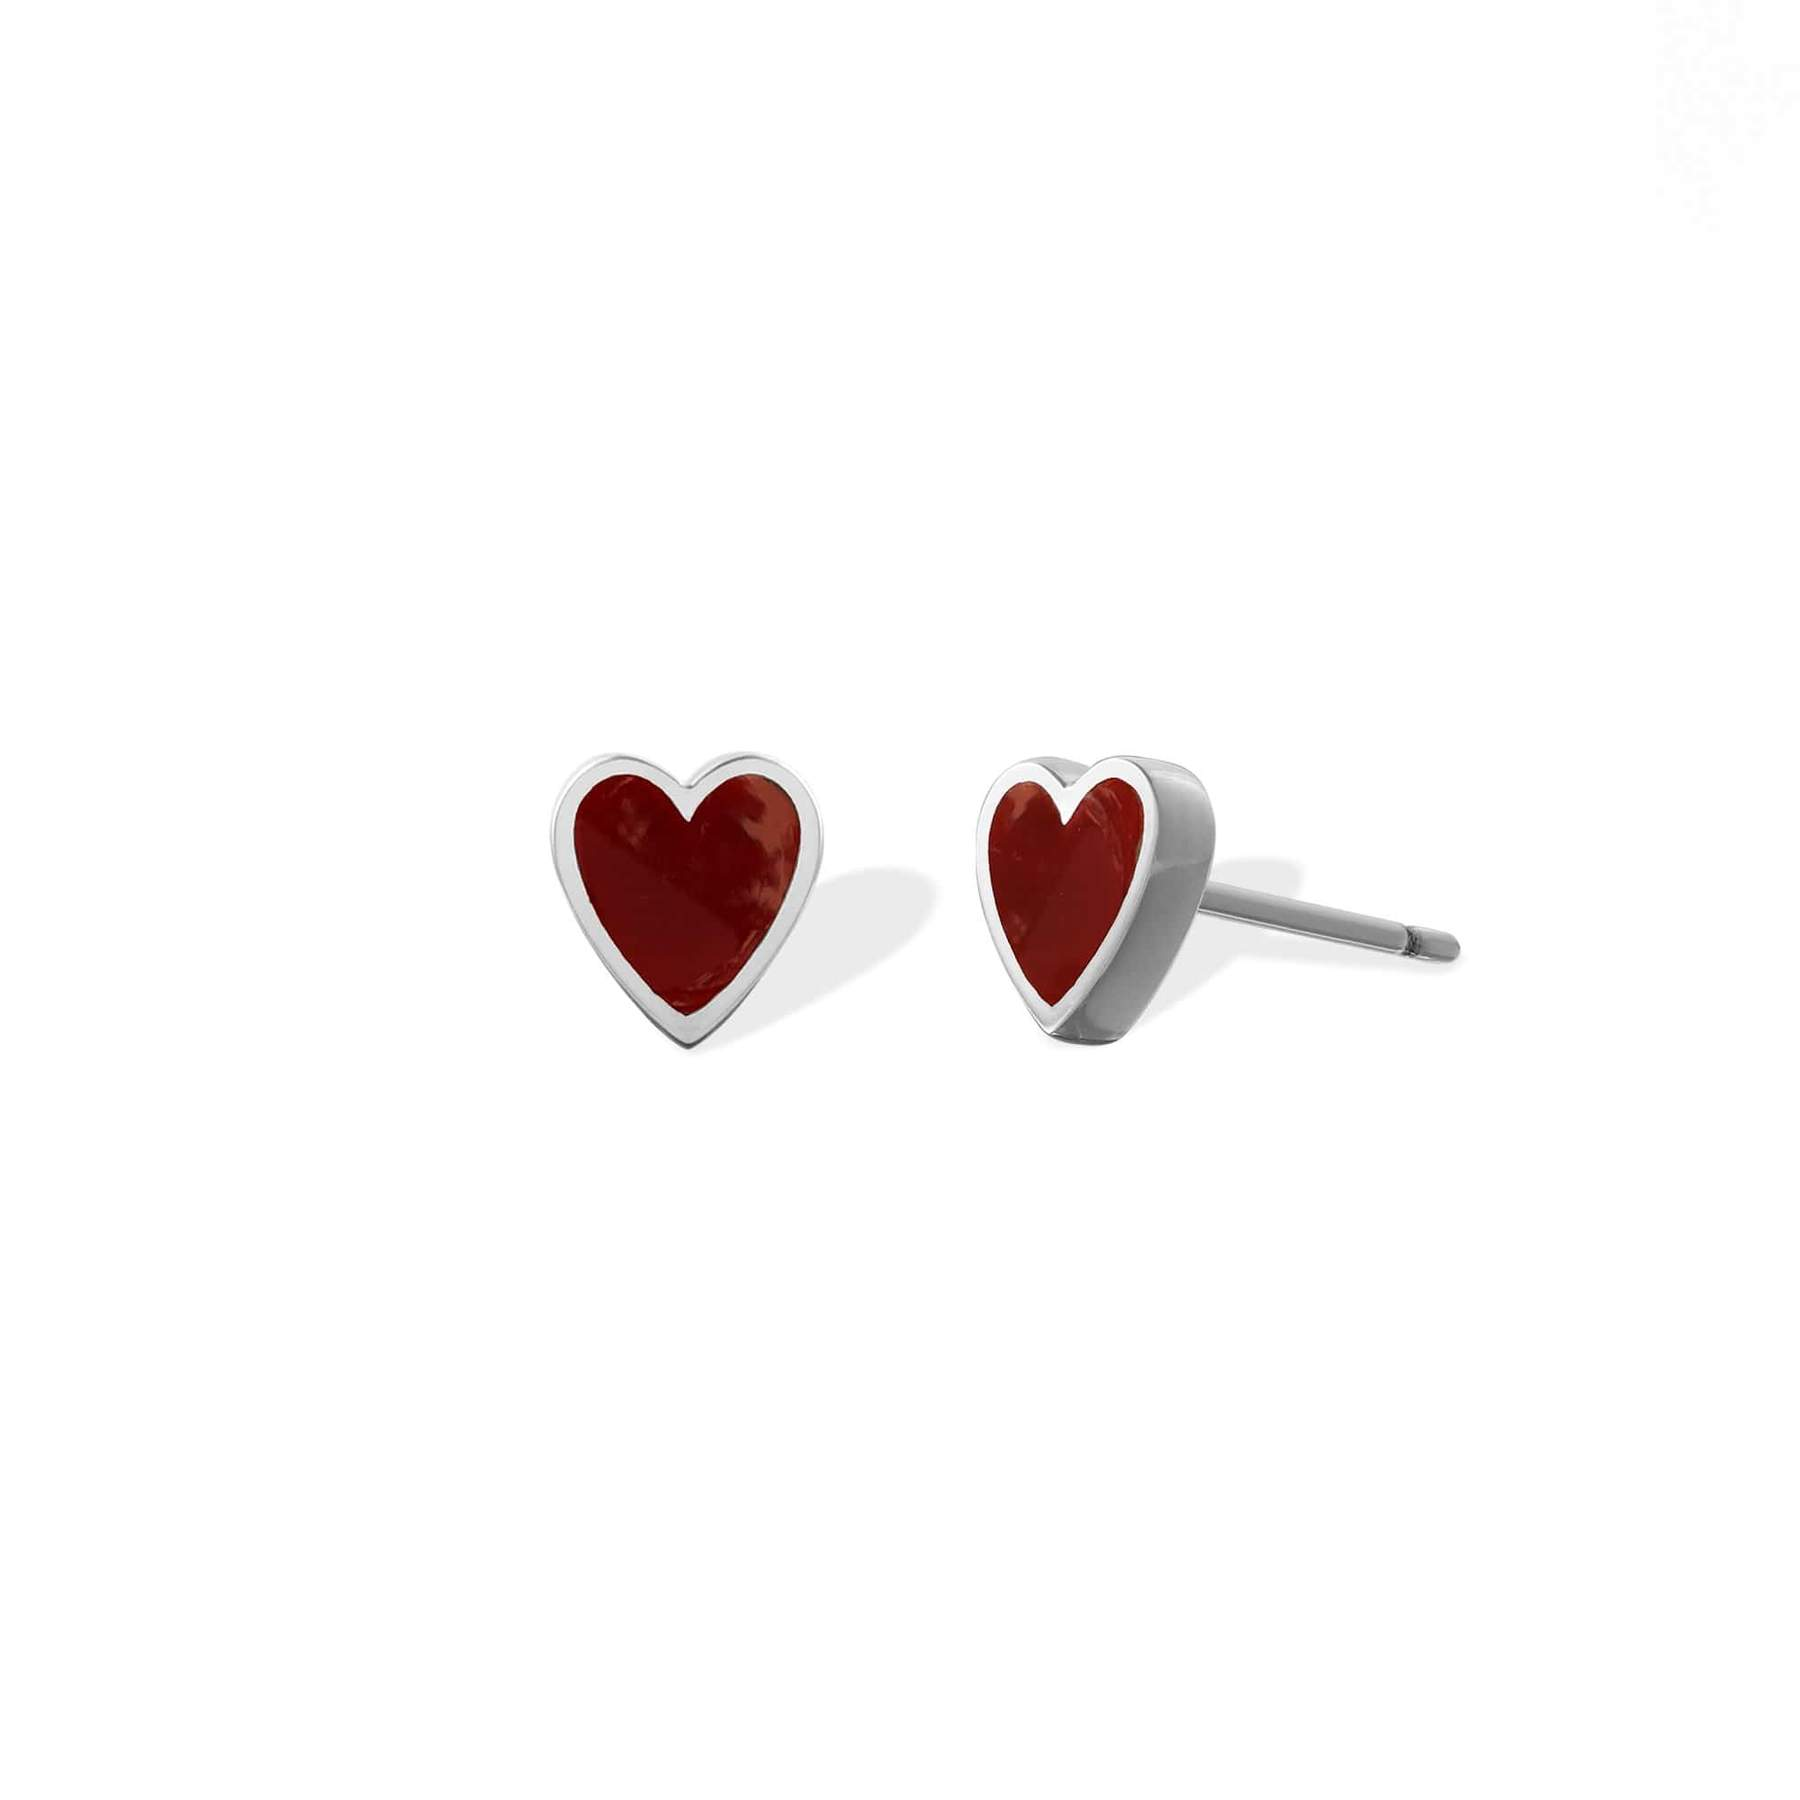 These Heart Studs are a customer fave. (Image: Boma Jewelry)